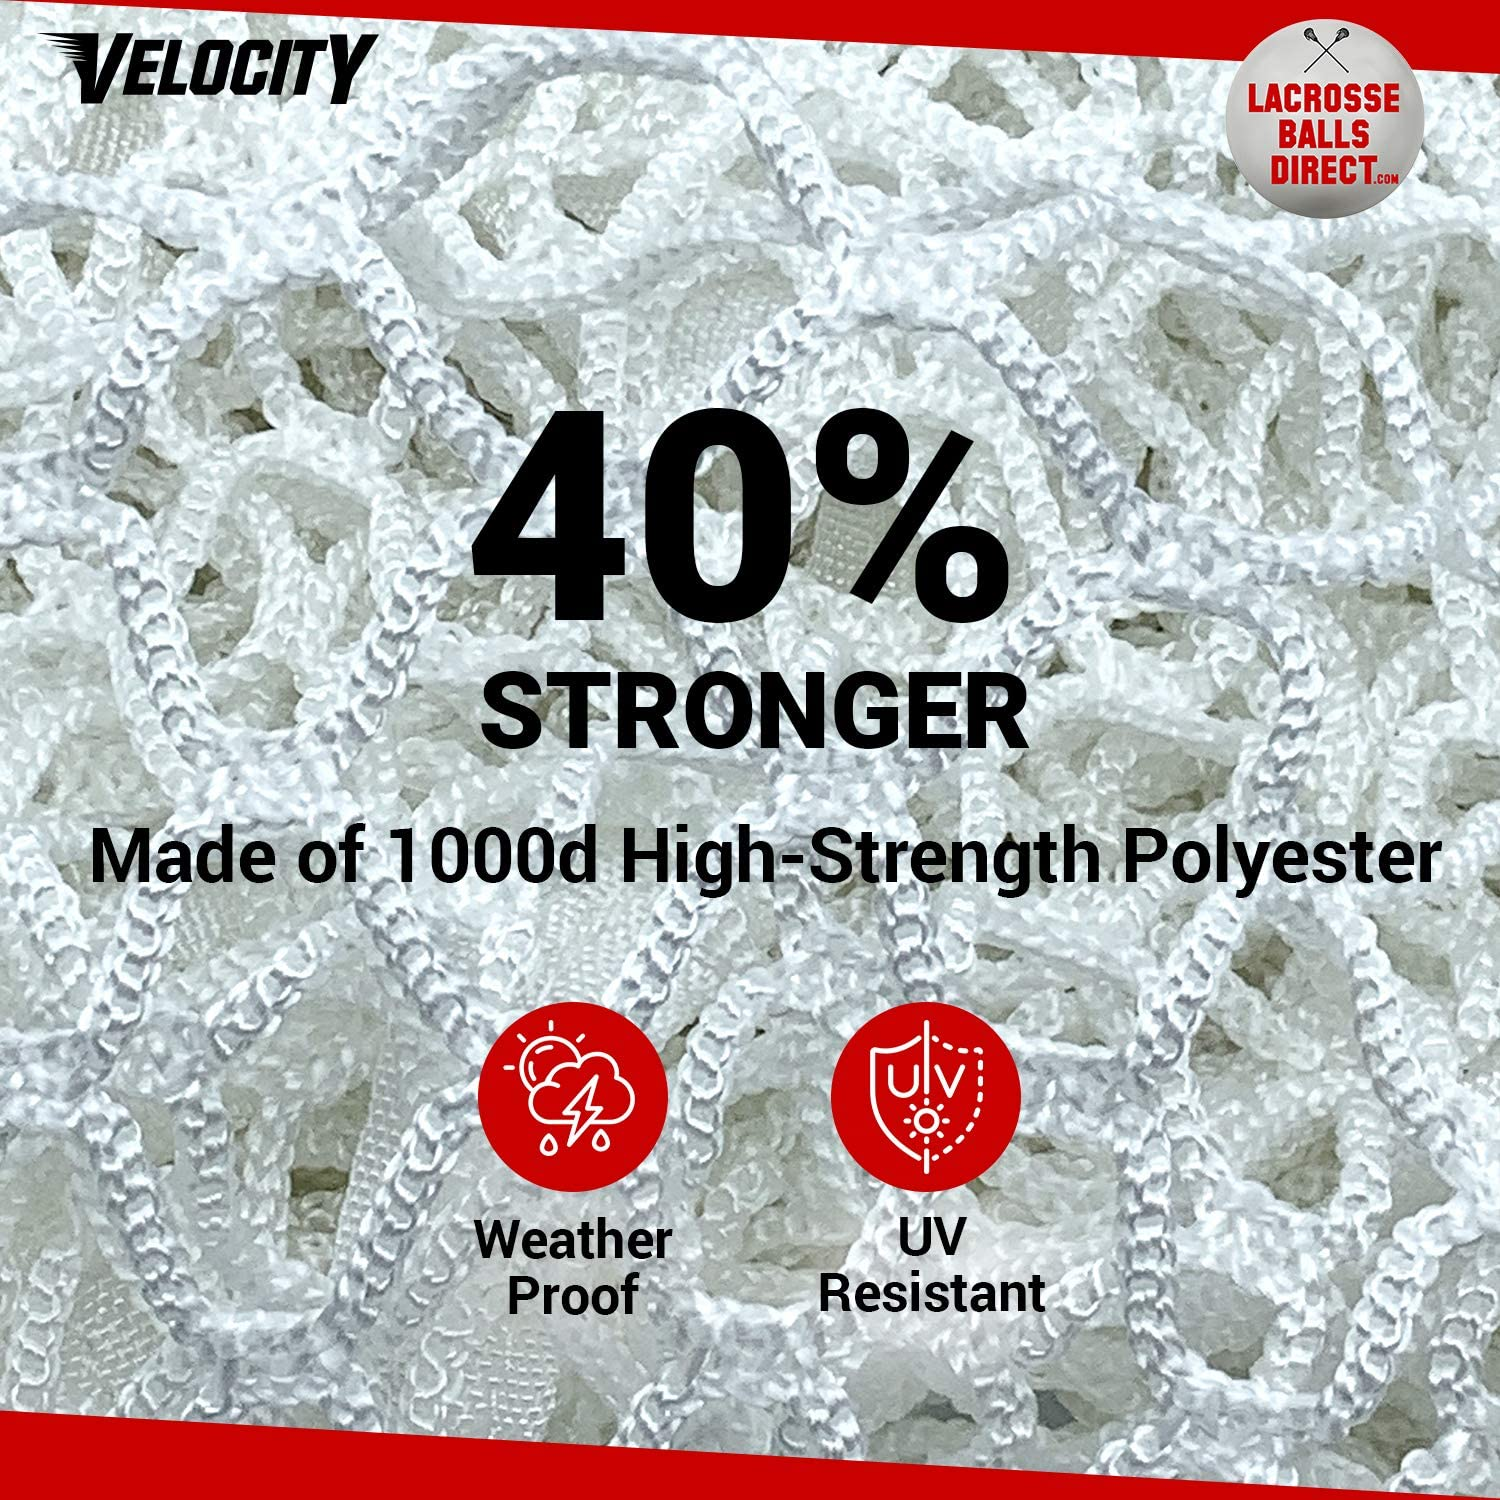 Velocity 7MM Heavy Duty White Lacrosse Net - Fits Regulation Goal - Weatherproof, UV Resistant 1000d High-Strength Polyester - Comes with 100+ Feet of Lacing Cord and 4 Quick Ties. : Sports & Outdoors